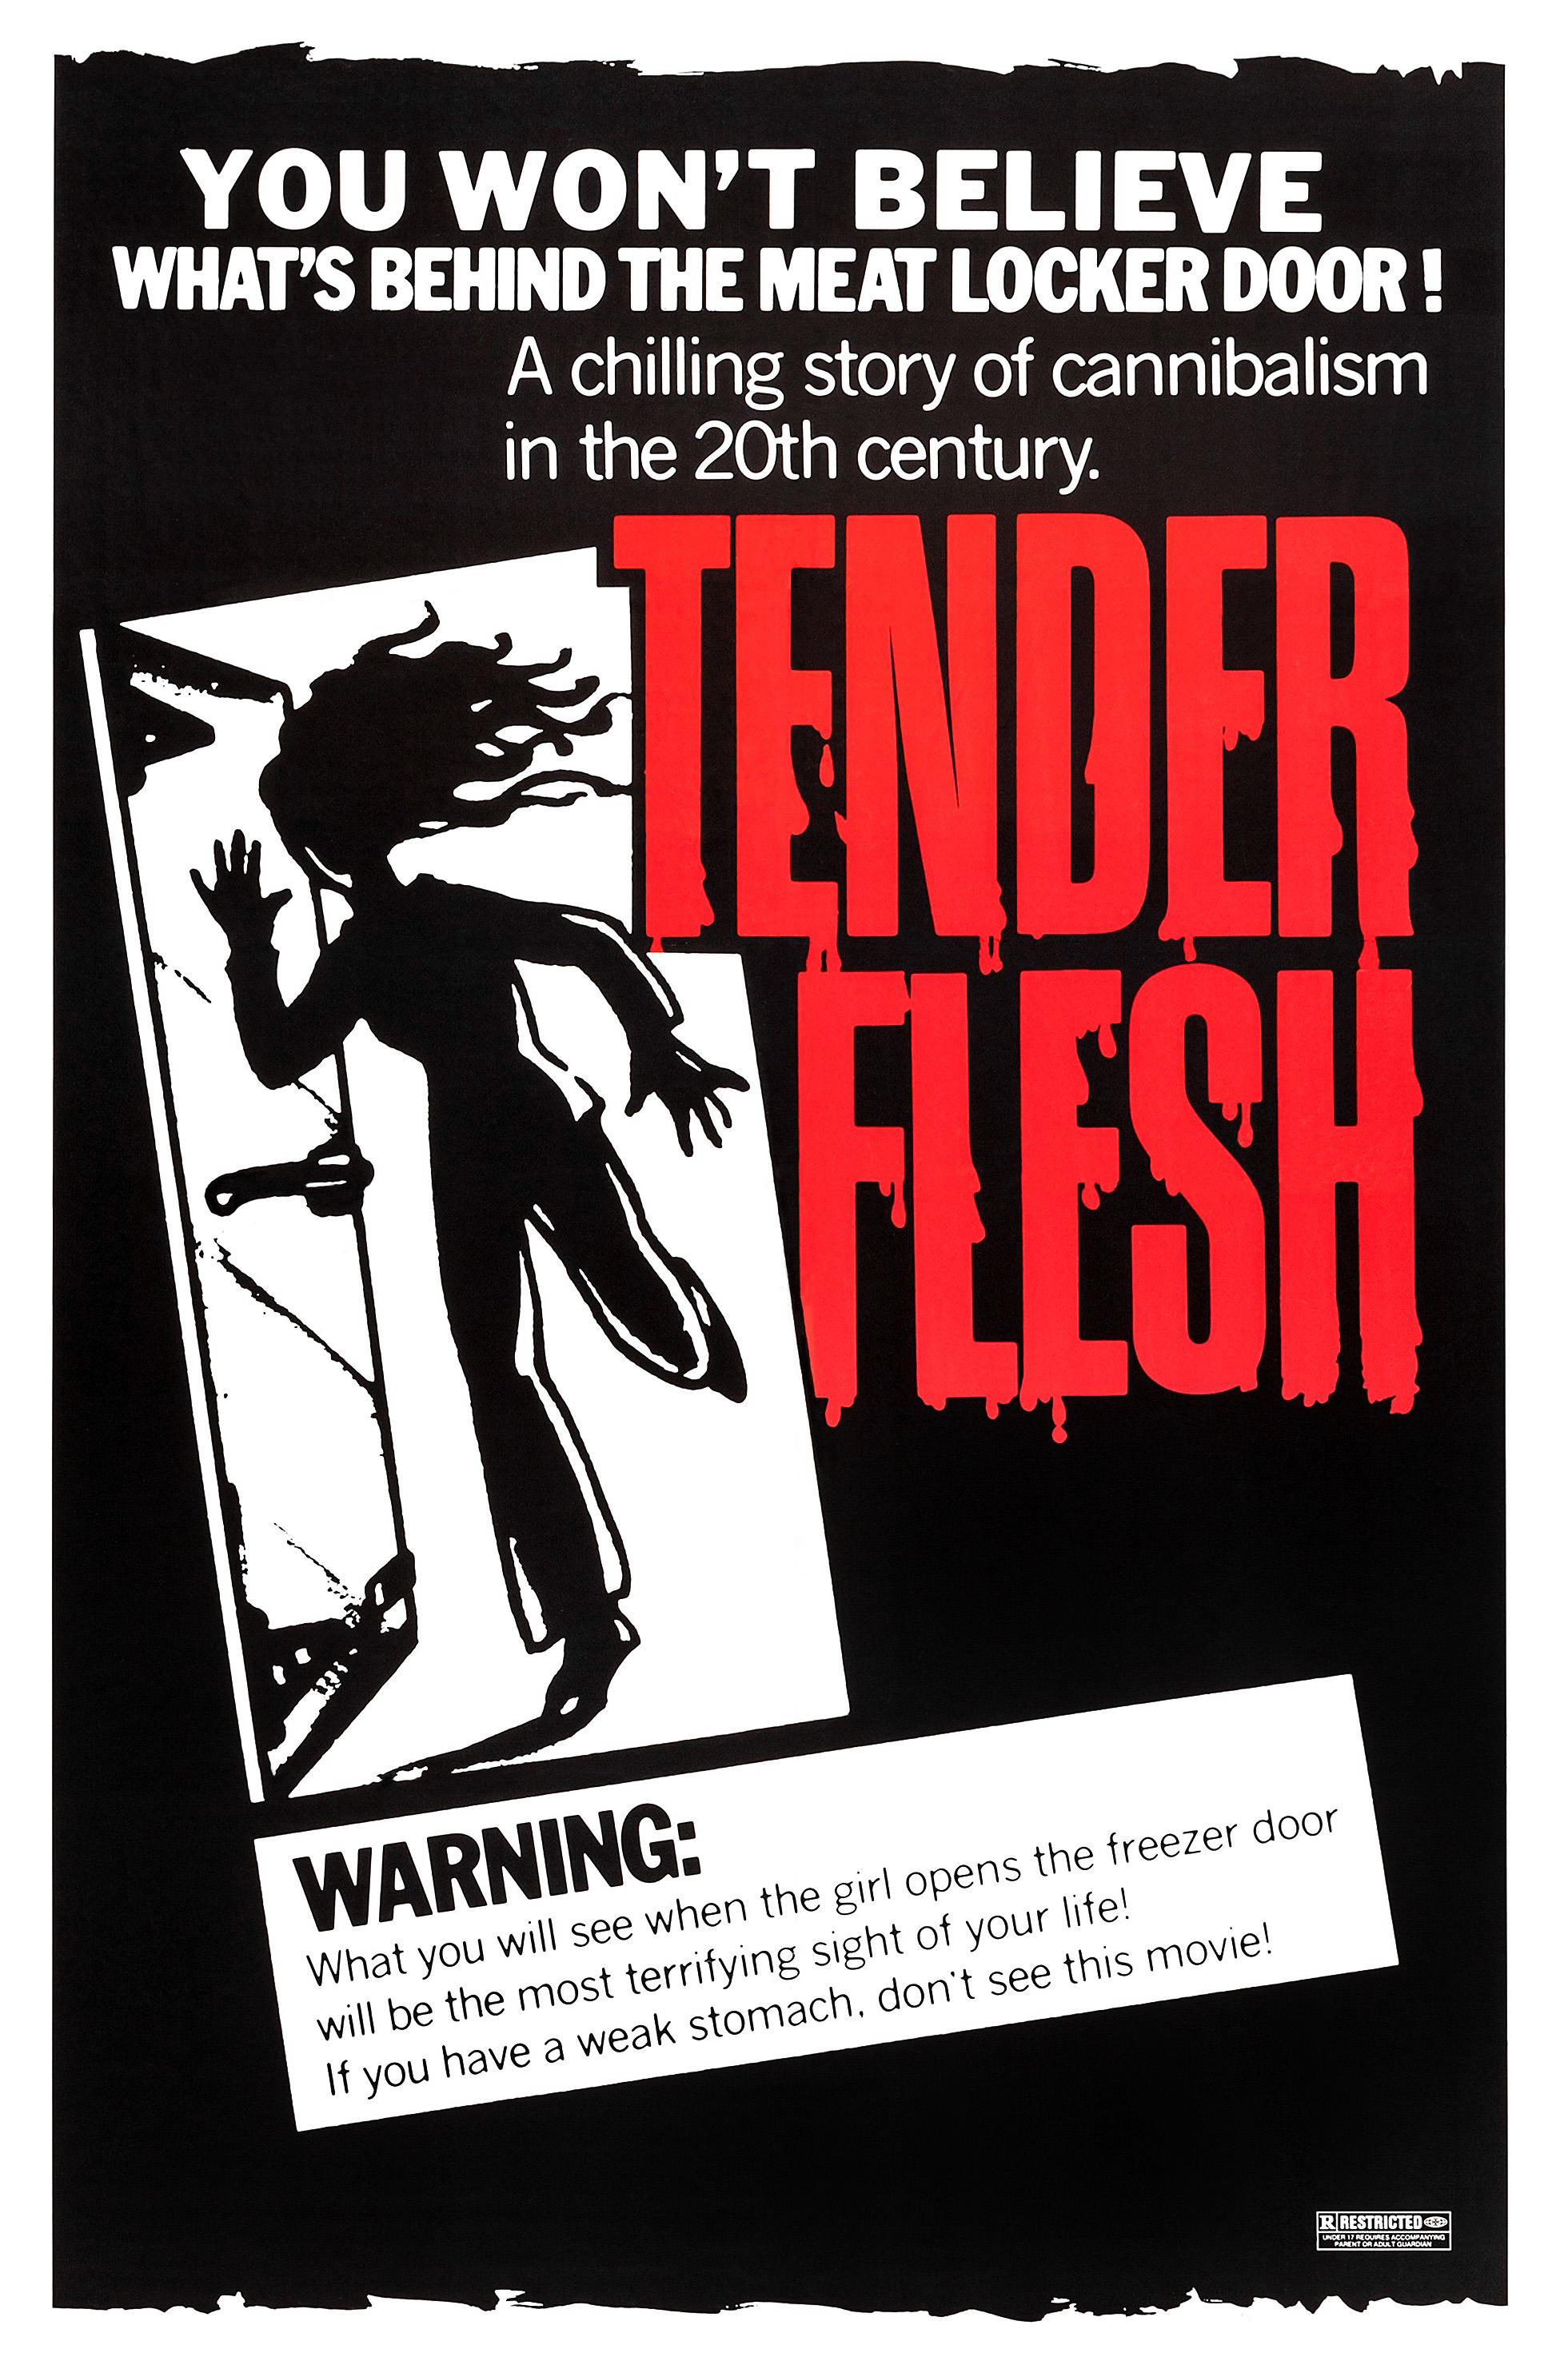 tender_flesh_poster_01mrhorrorpediaarrow beach posterWelcome-to-Arrow-Beach-1974arrowmeg-foster-welcome-to-arrow-beach-pic-14Laurence-HarveyWelcome-to-Arrow-Beach-Stuart-WhitmanTender-Flesh-Mark-of-the-Devil-Night-Evelyn-Came-Out-of-the-Grave-ad-matTender-Flesh-ad-matarrow beachWelcome-to-Arrow-Beach-US-VHSWelcome-to-Arrow-Beach-ad-matWelcome-to-Arrow-Beach-Diamond-VHS